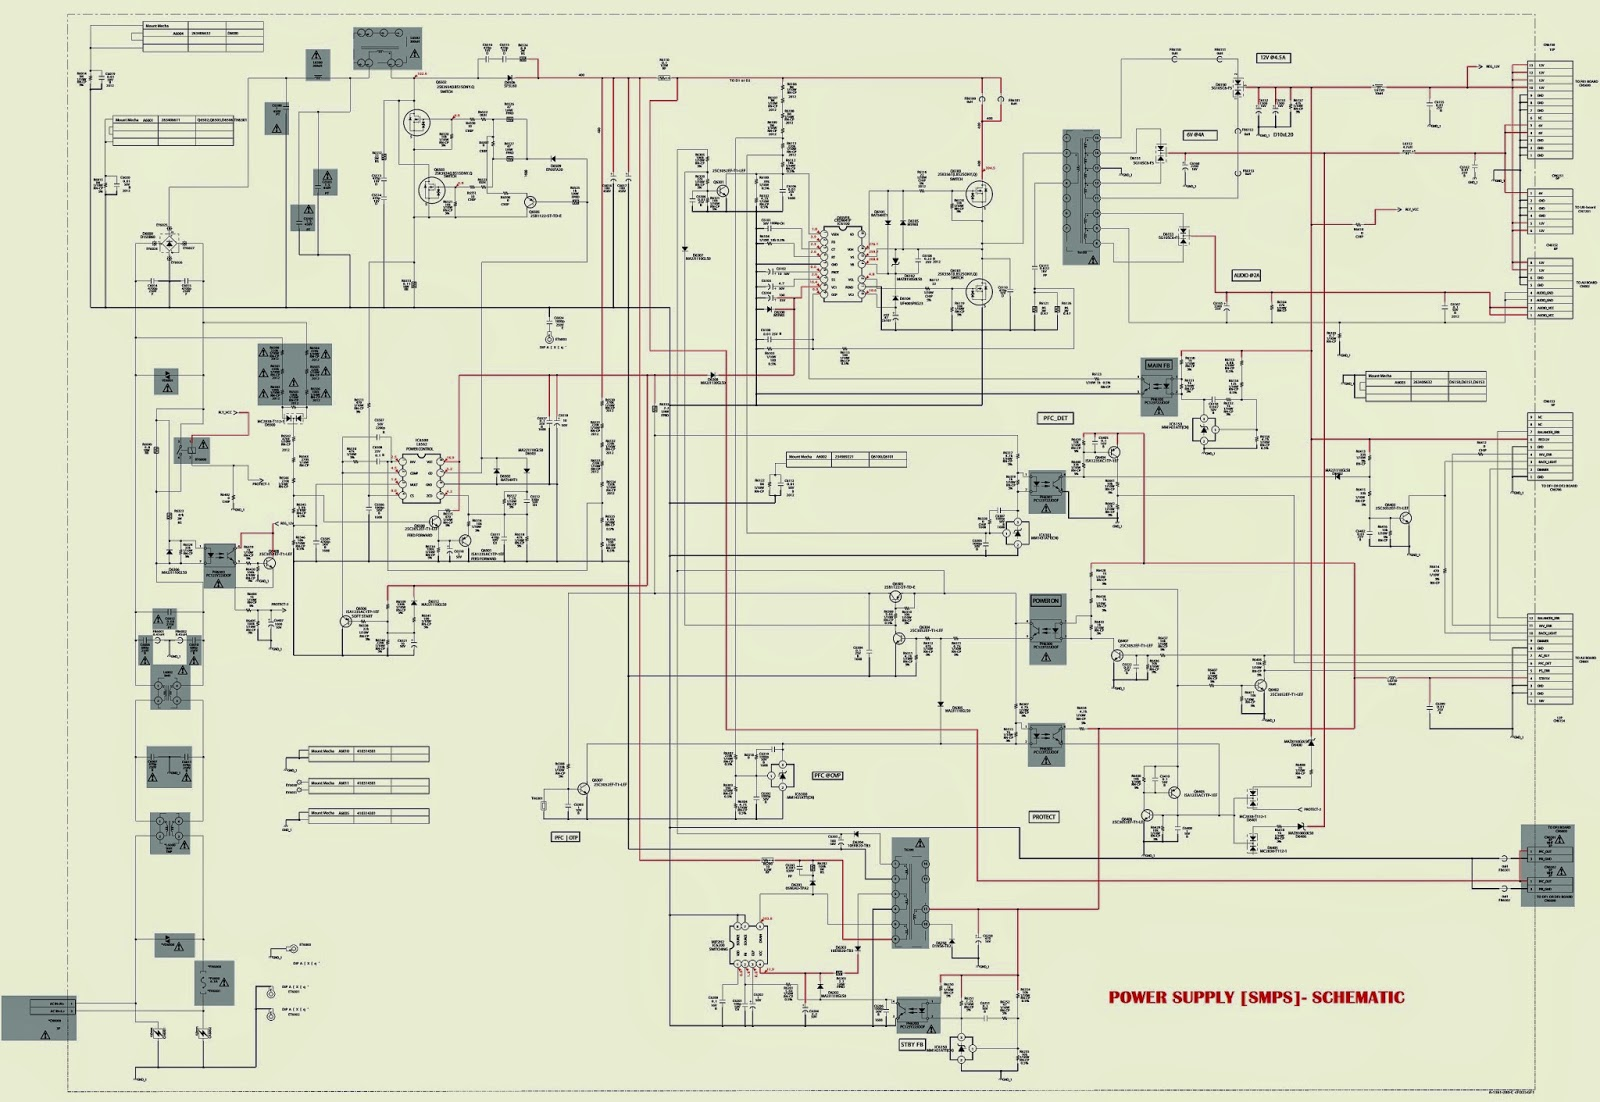 Free Sanyo Tv Schematic Diagrams Not Lossing Wiring Diagram Microwave Samsung Power Supply Board Get Image Crt